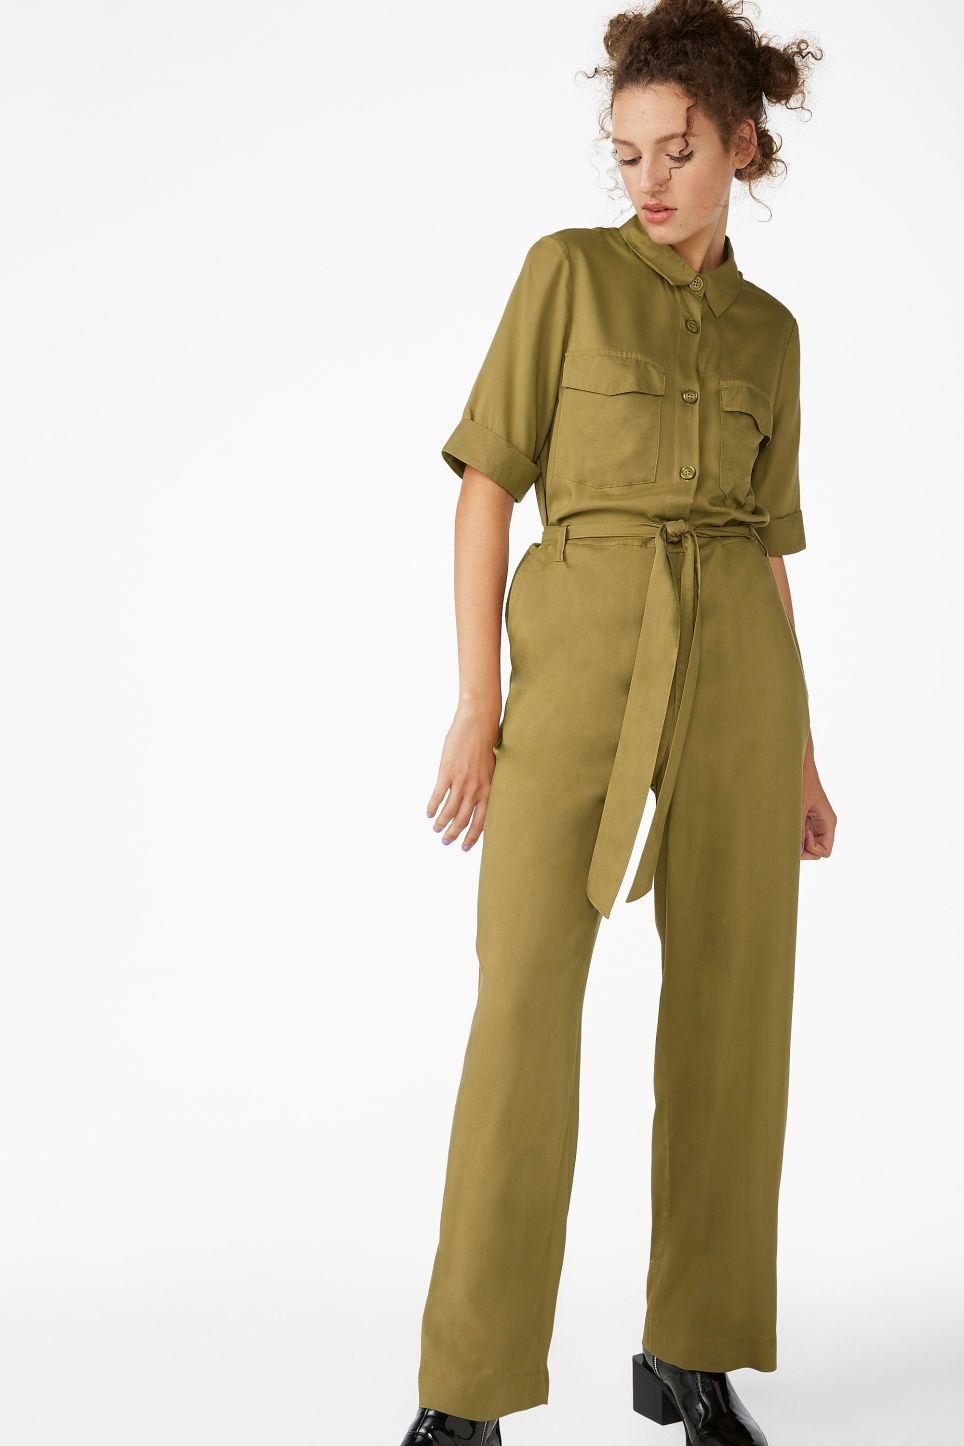 9f459ee3ff Monki utilitarian jumpsuit in beige - A belted jumpsuit featuring a fab  utility look with a